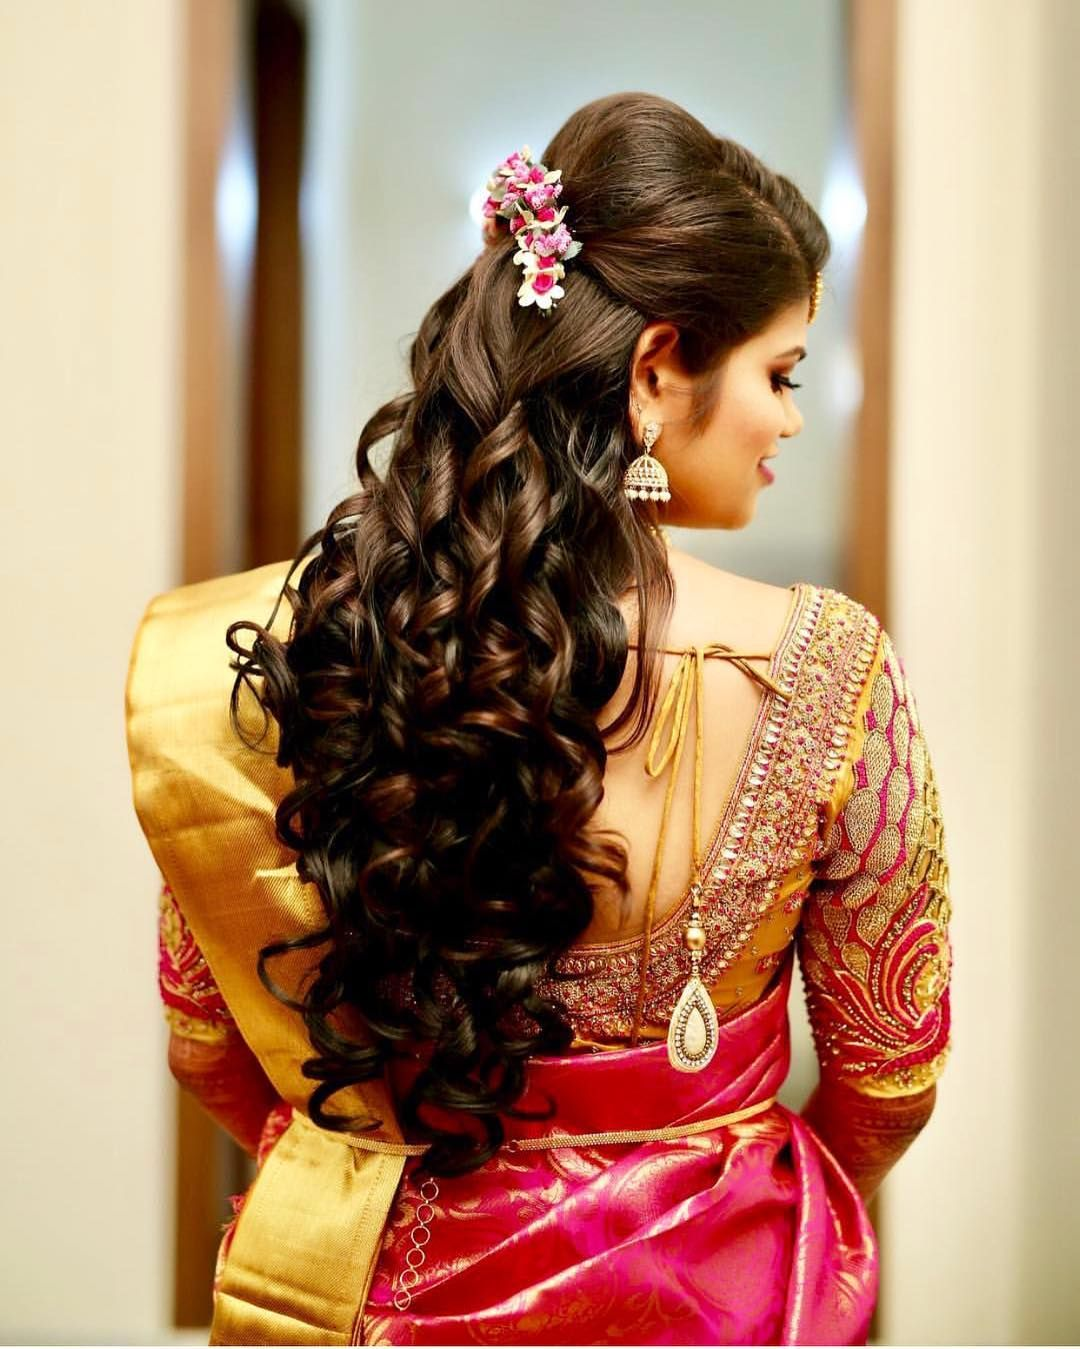 Getting Ready Shots Like These Bridal Hairstyle Goals Mua Indian Bridal Hairstyles Bridal Hairstyle Indian Wedding Hair Styles